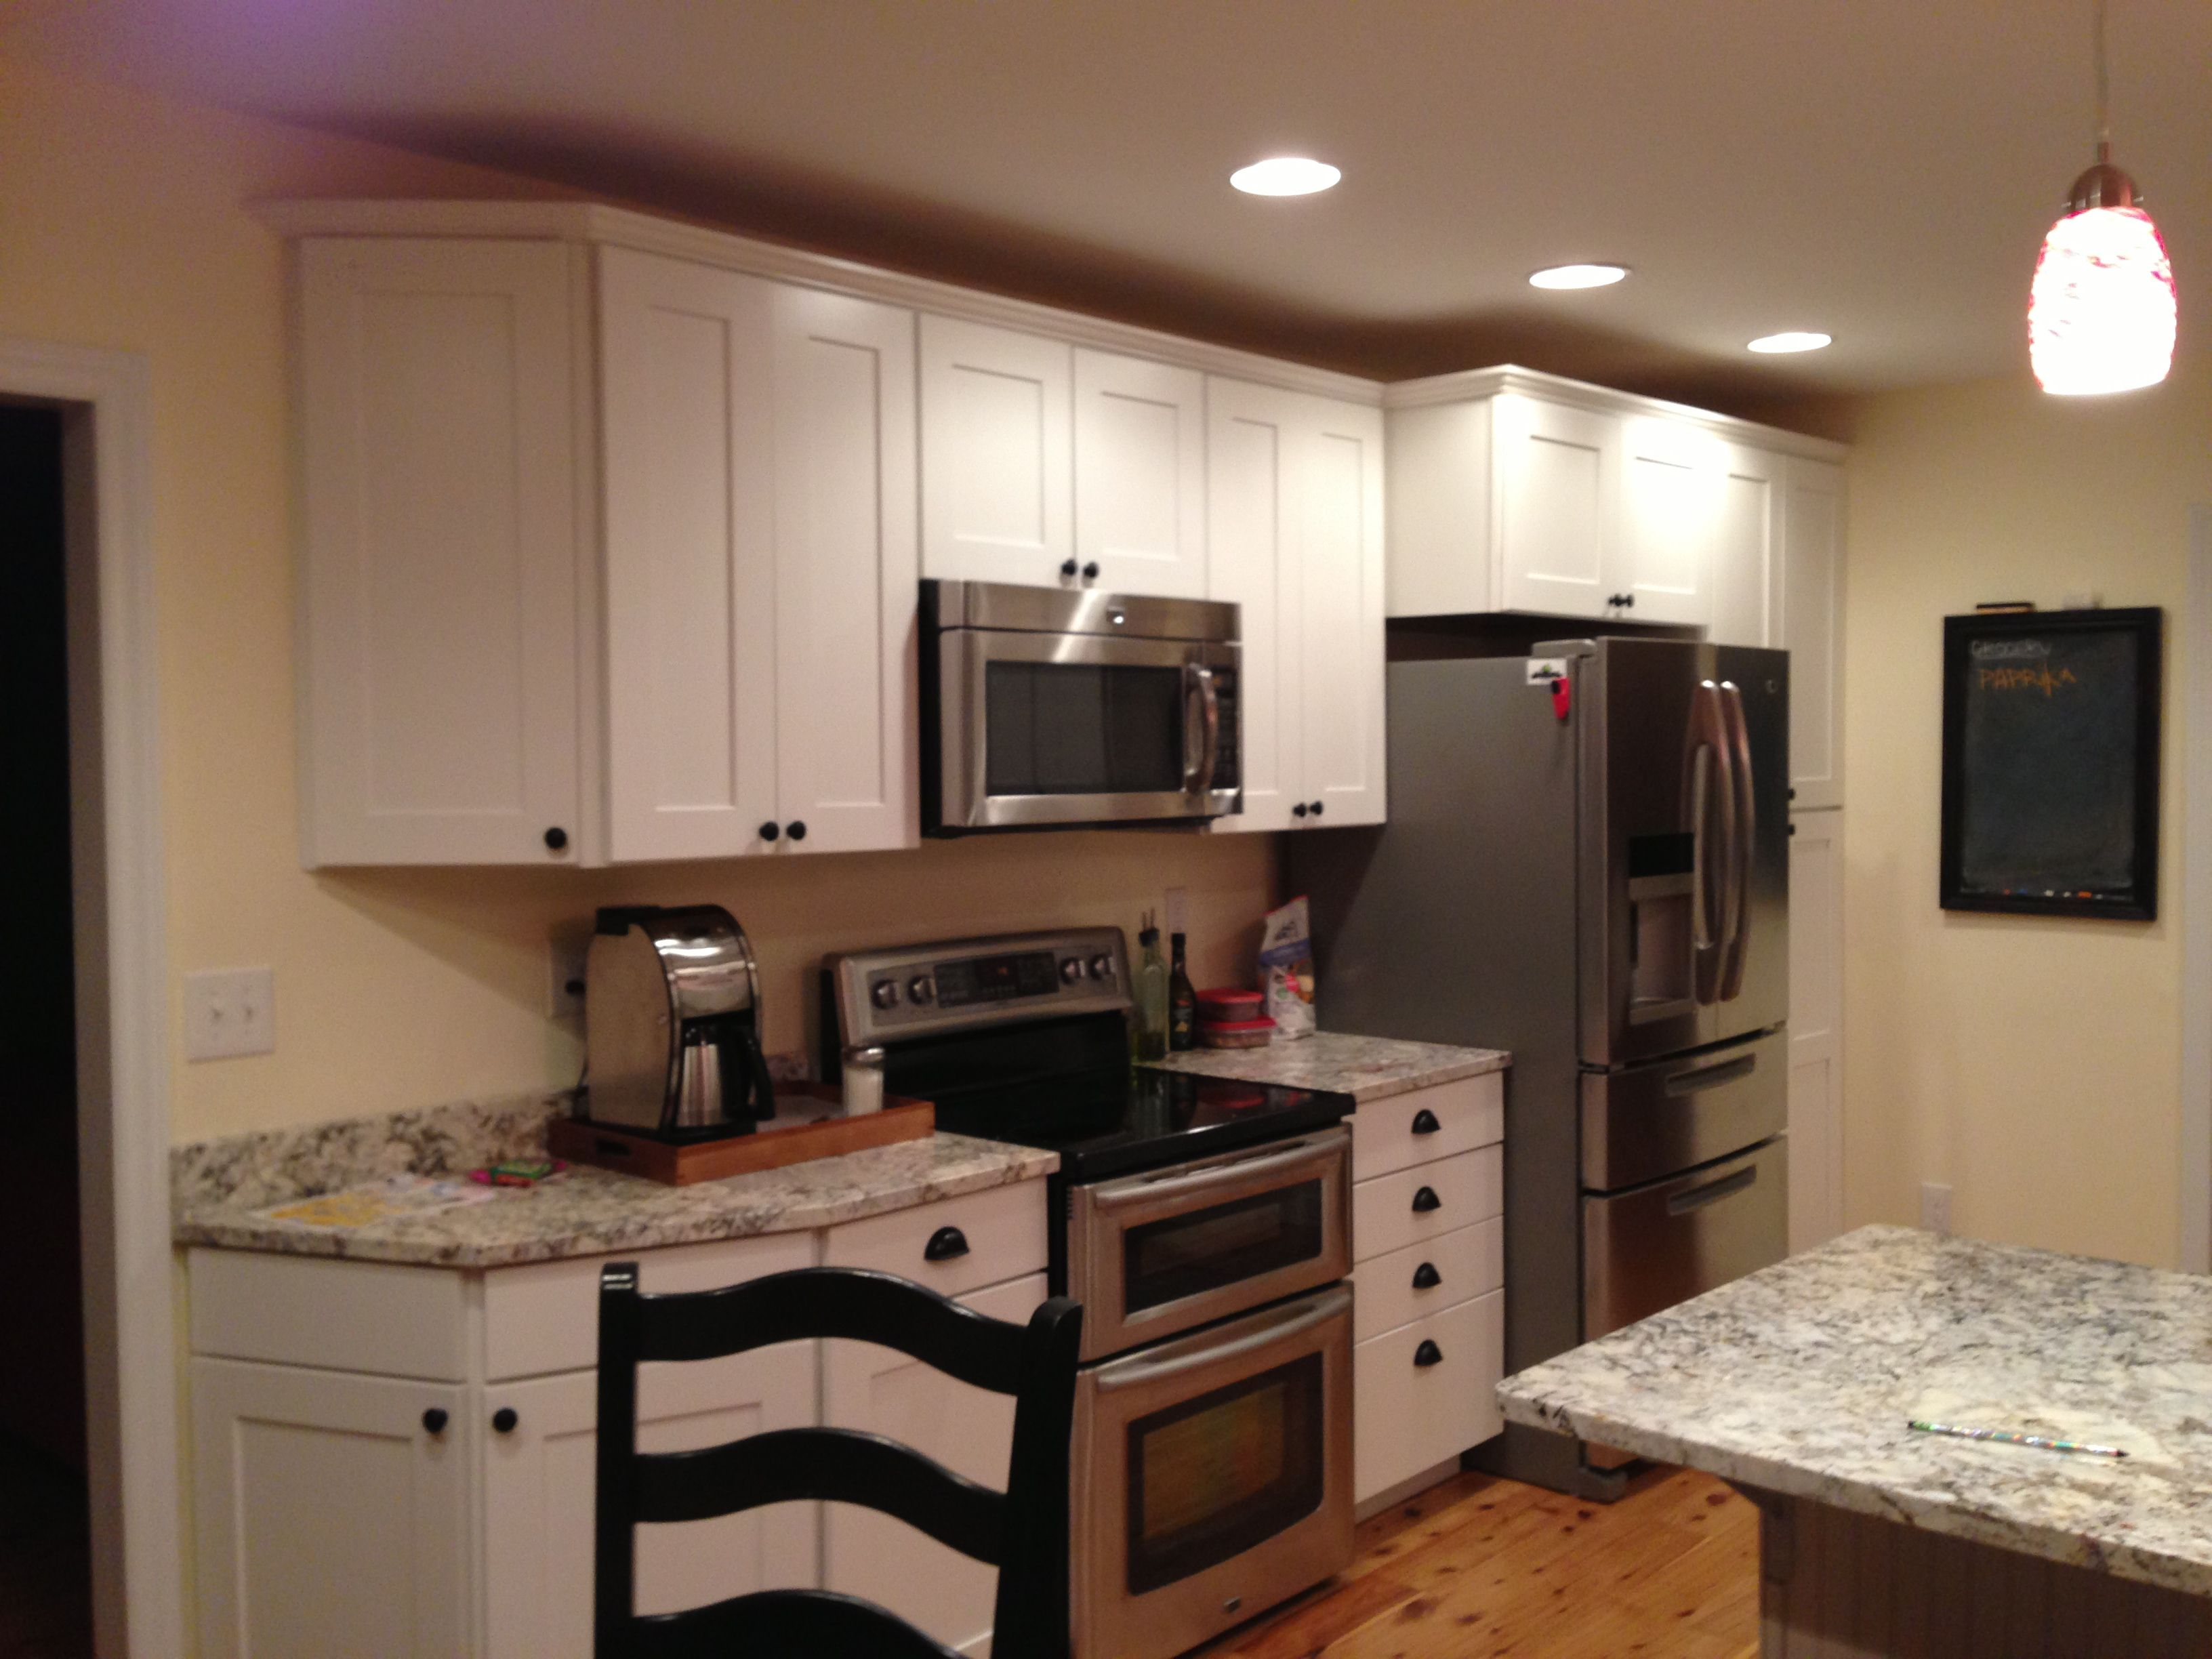 How To Paint Kitchen Cabinets Diy Kitchen Painting Kitchen Cabinets Kitchen Cabinets Makeover